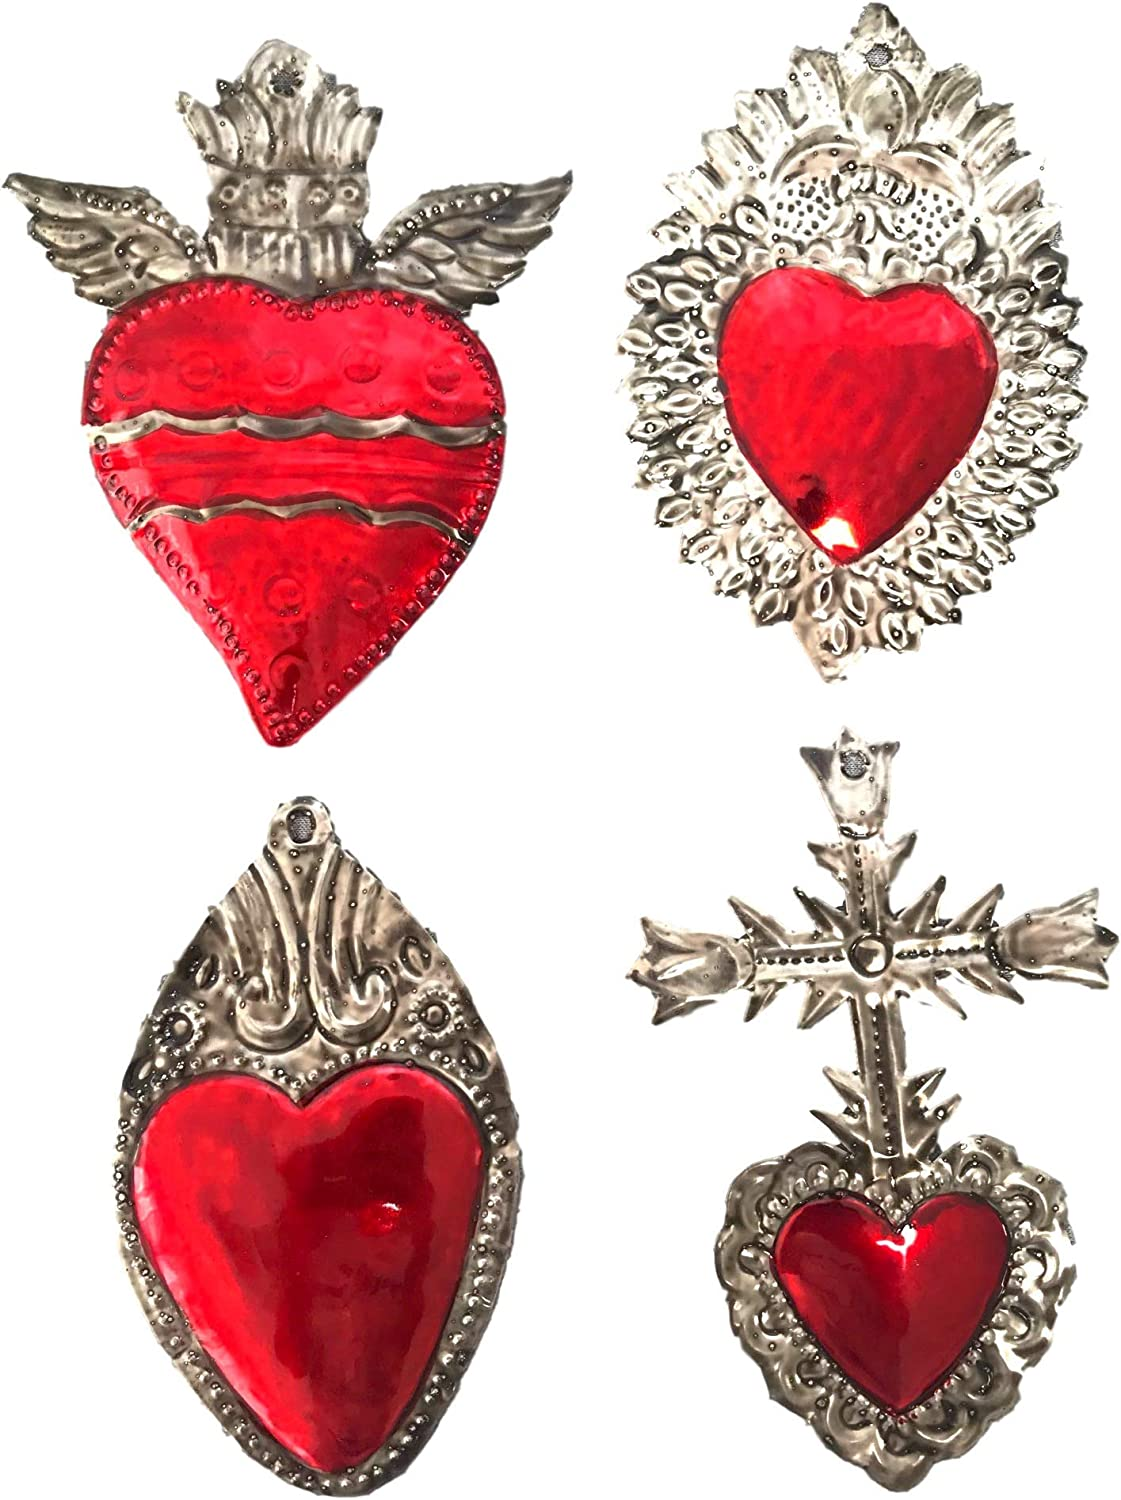 Milagros Charms - Tin Painted Sacred Heart Ornaments - Mexican Art (Set of 4) - Large - Milagros Gris y Rojo Grandes